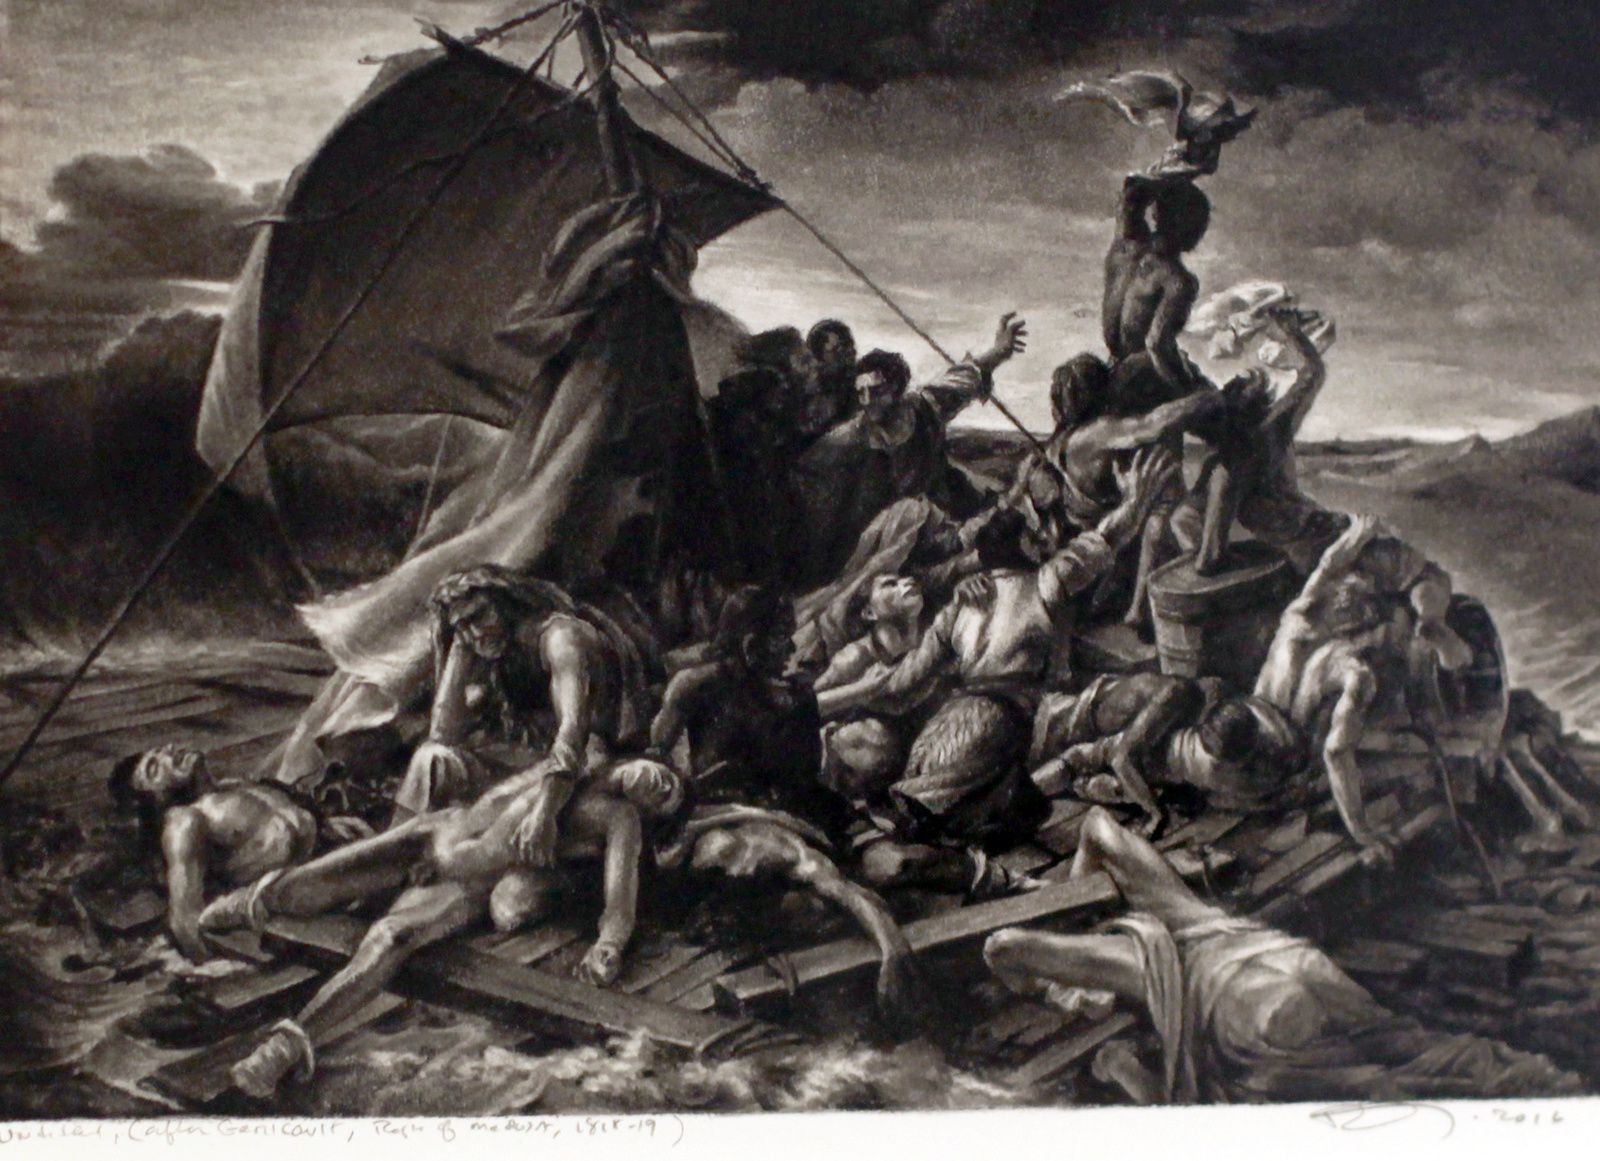 """Untitled (After Géricault, the raft of the medusa 1818-1819)"", 2016 de Robert Longo - Courtesy Galerie Ropac © Photo Éric Simon"